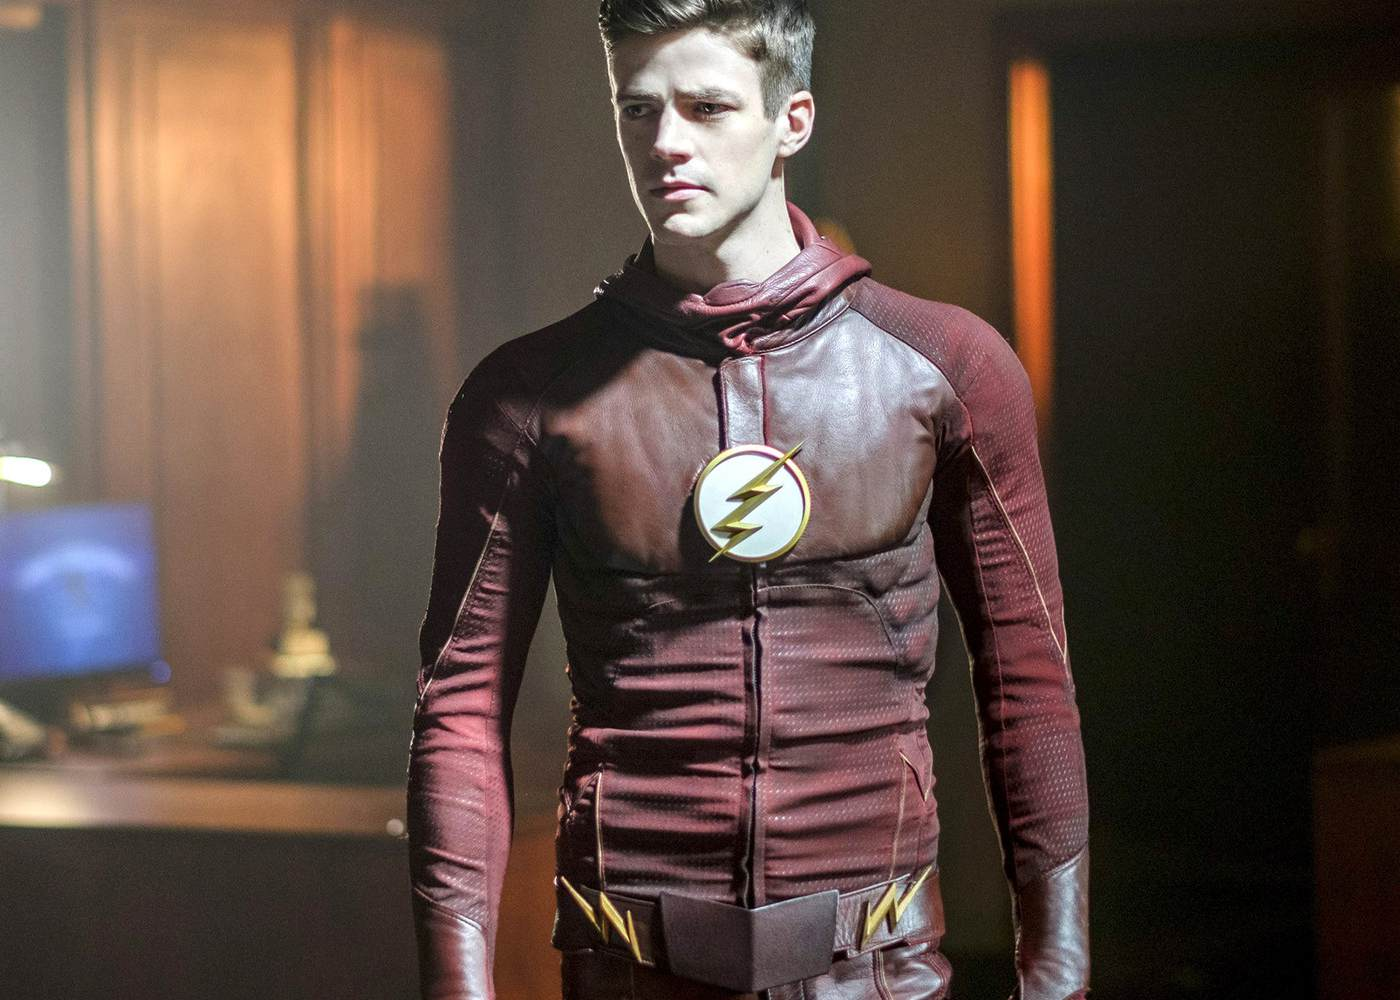 Team Flash Presses on Without Barry in The Flash Season 4 Trailer